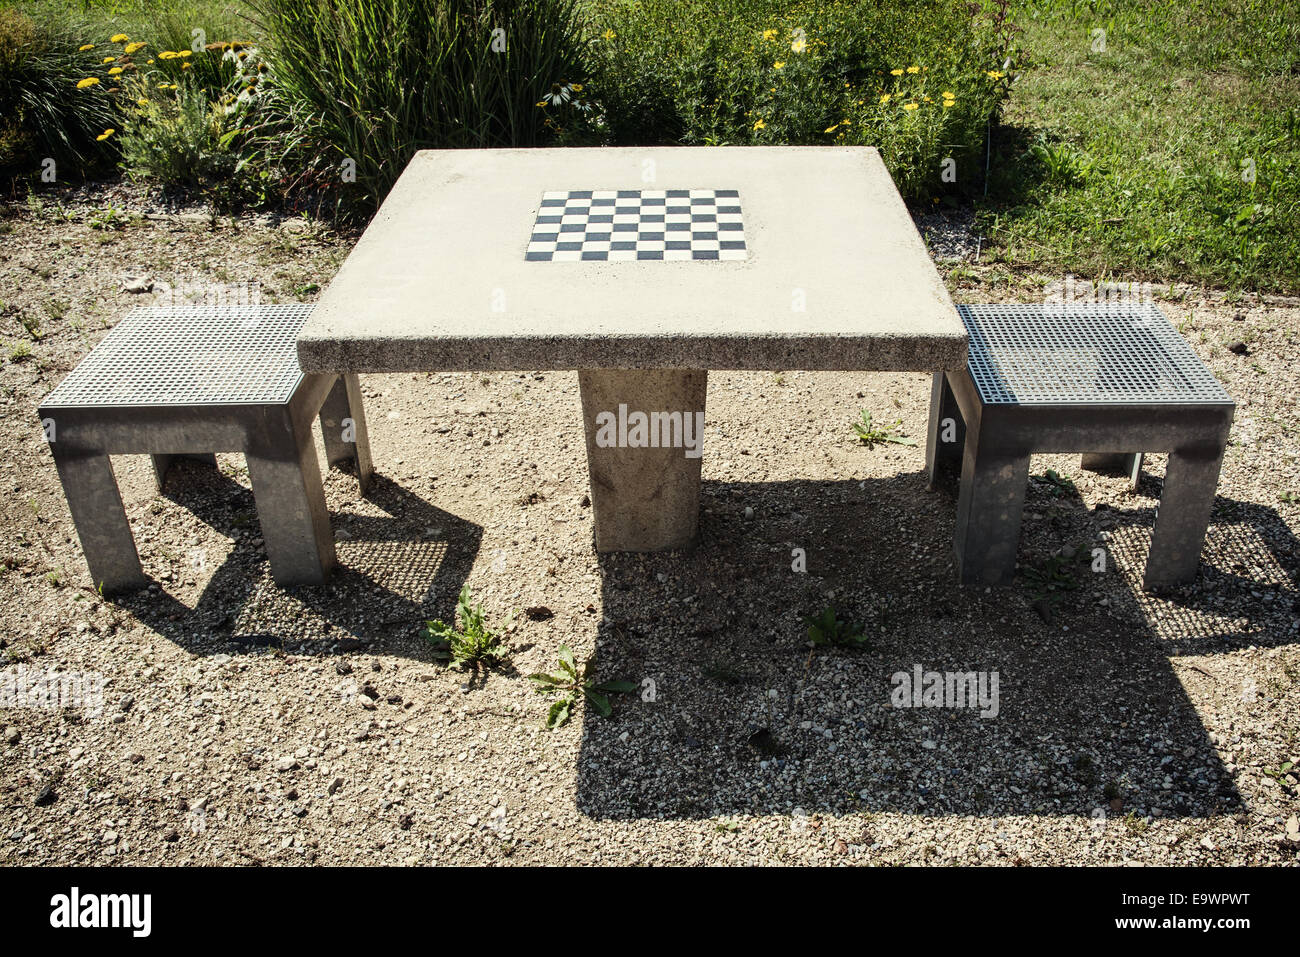 Chess Table And Chairs In Outdoor.